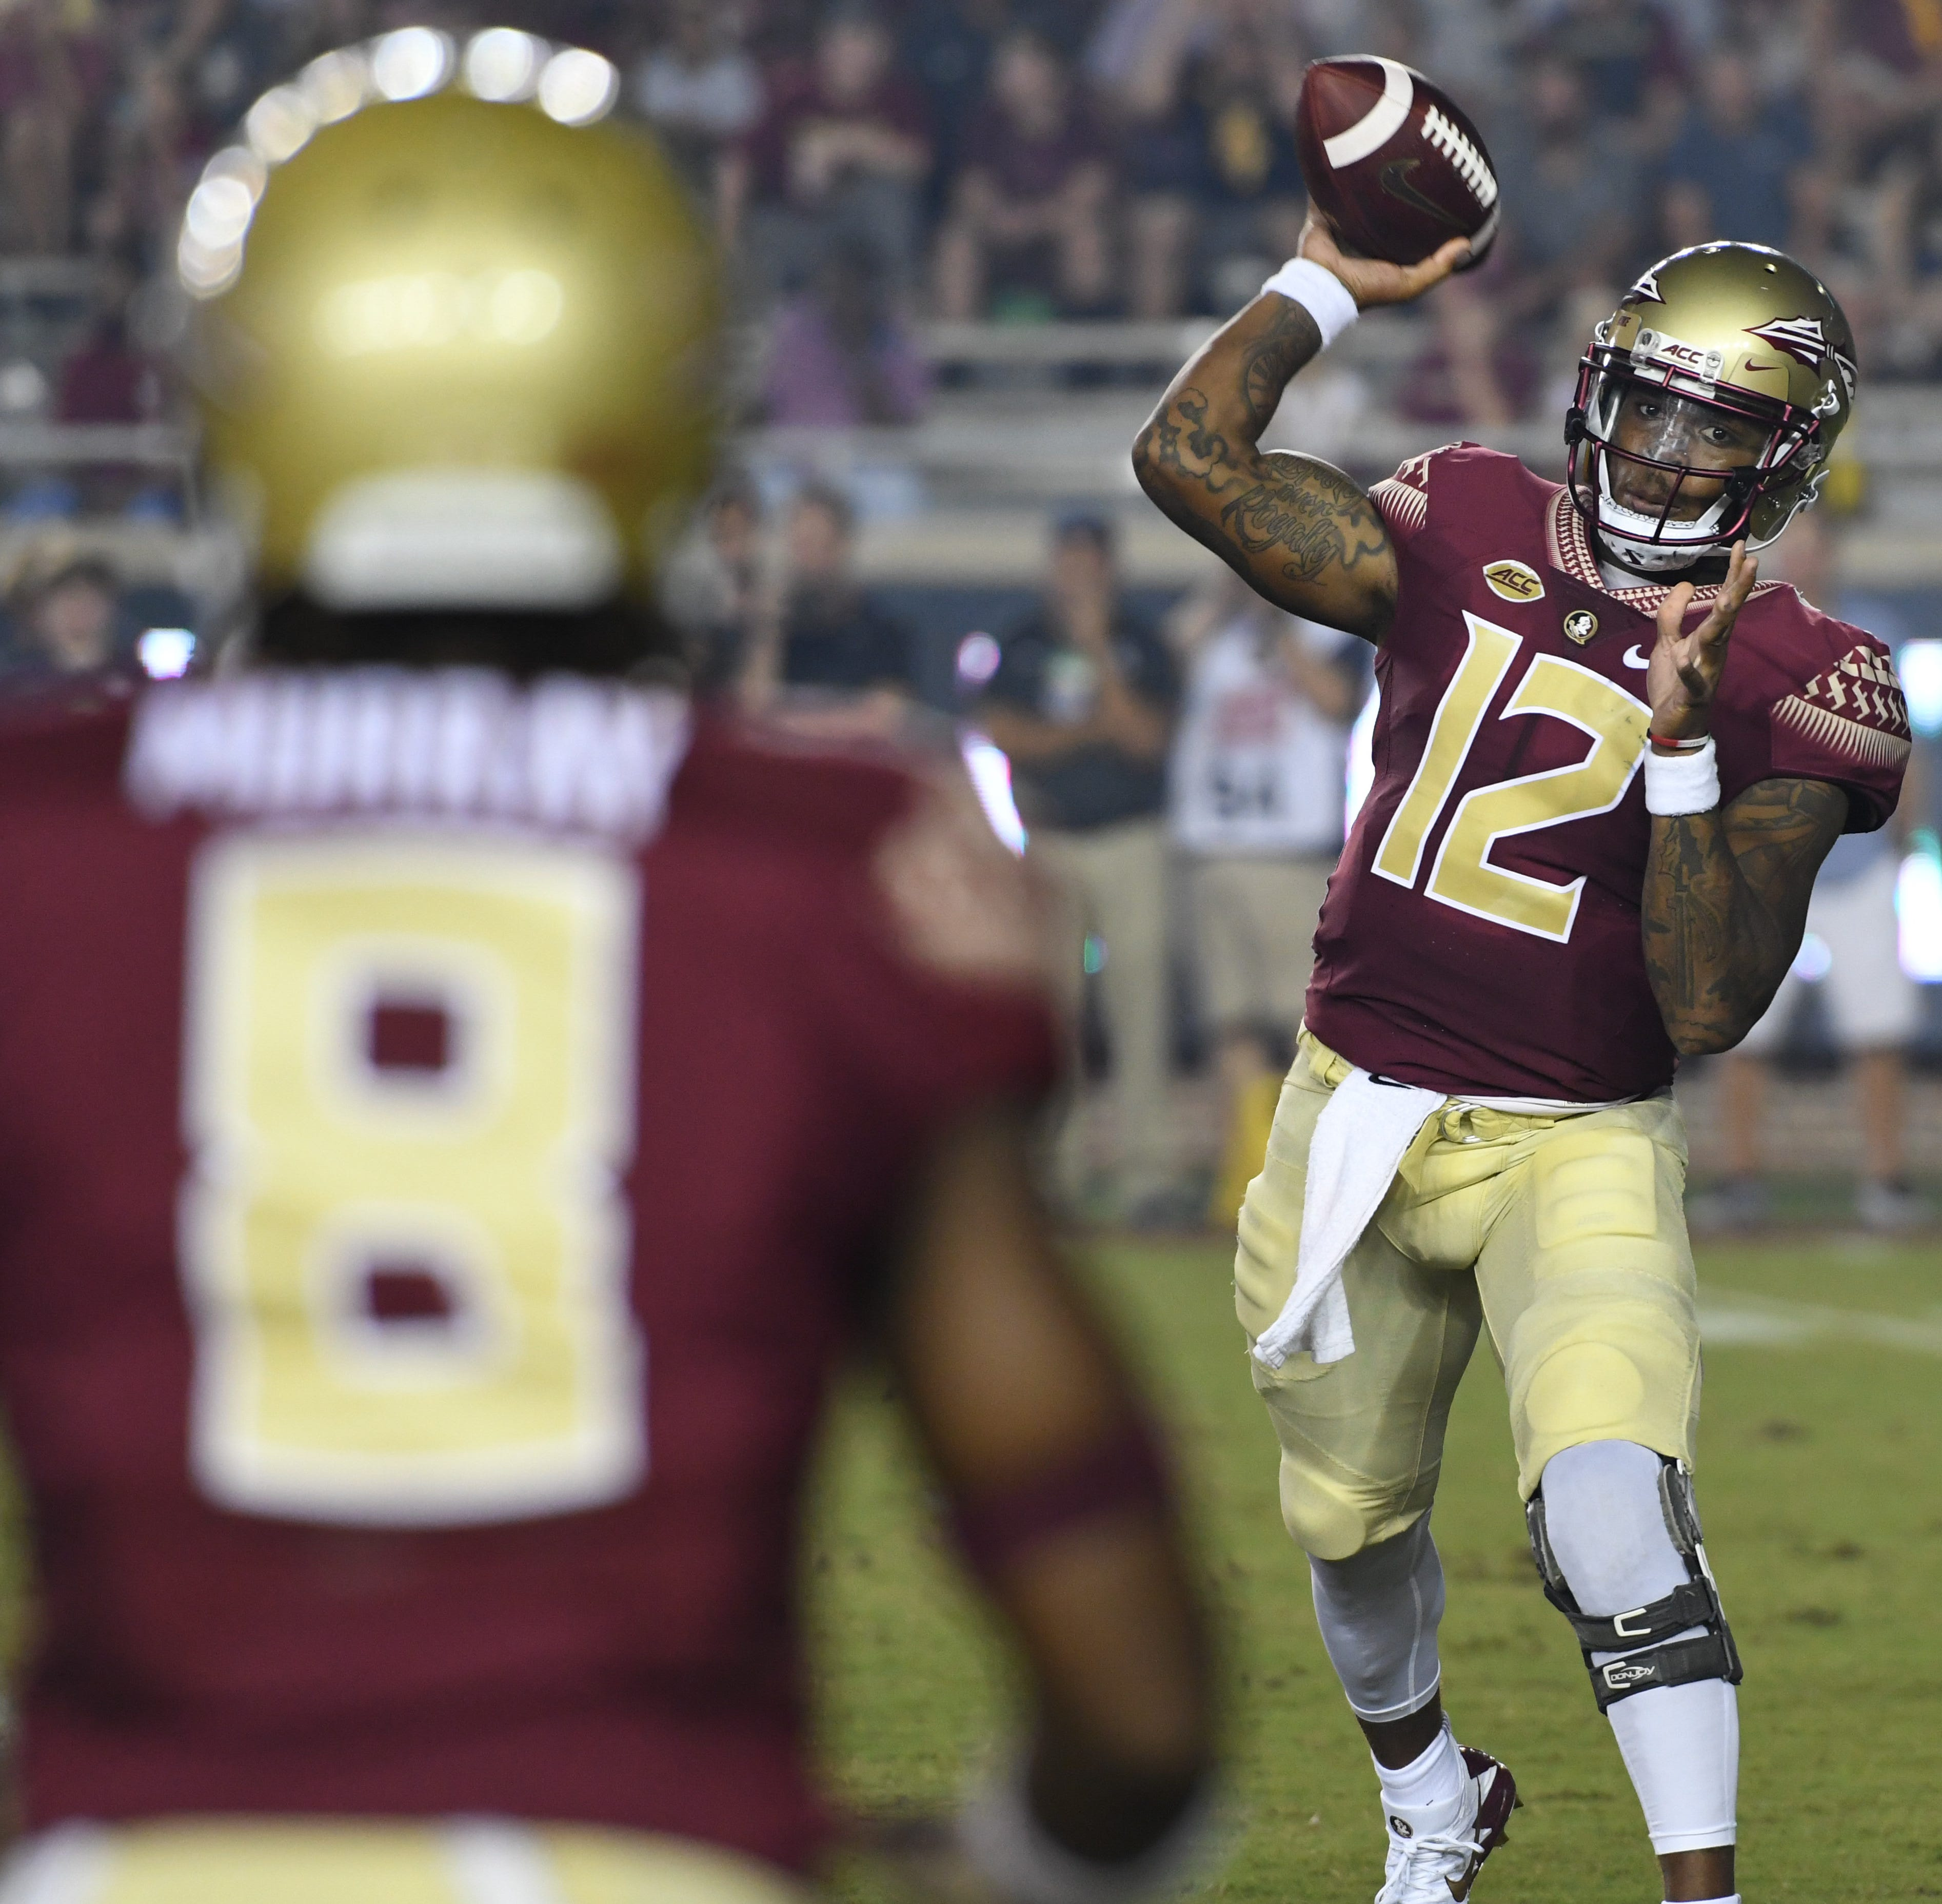 Florida State survives against Louisville on late touchdown